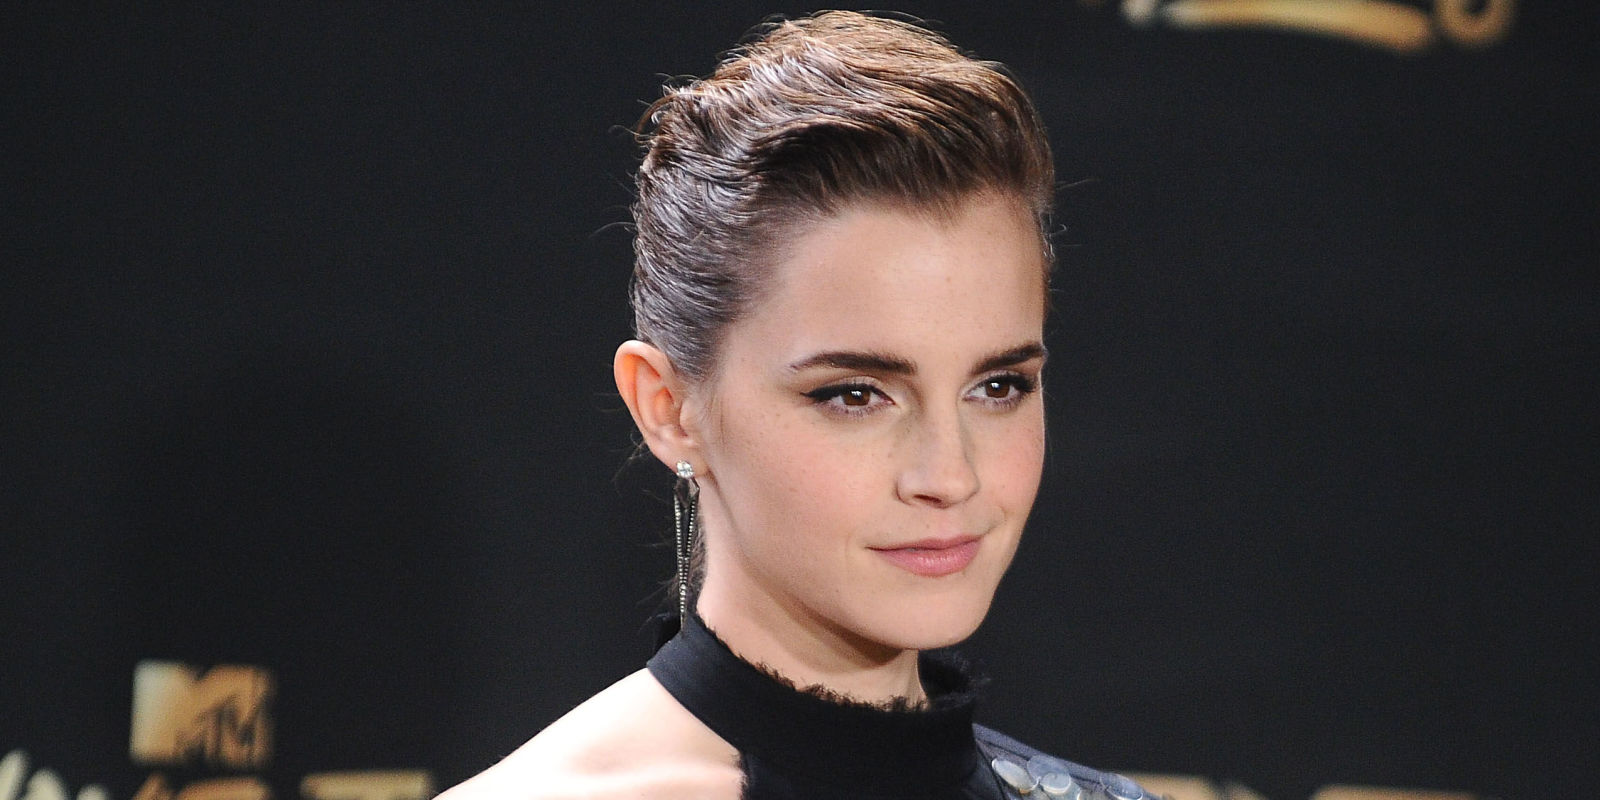 HD wallpapers how to style your hair like hermione granger